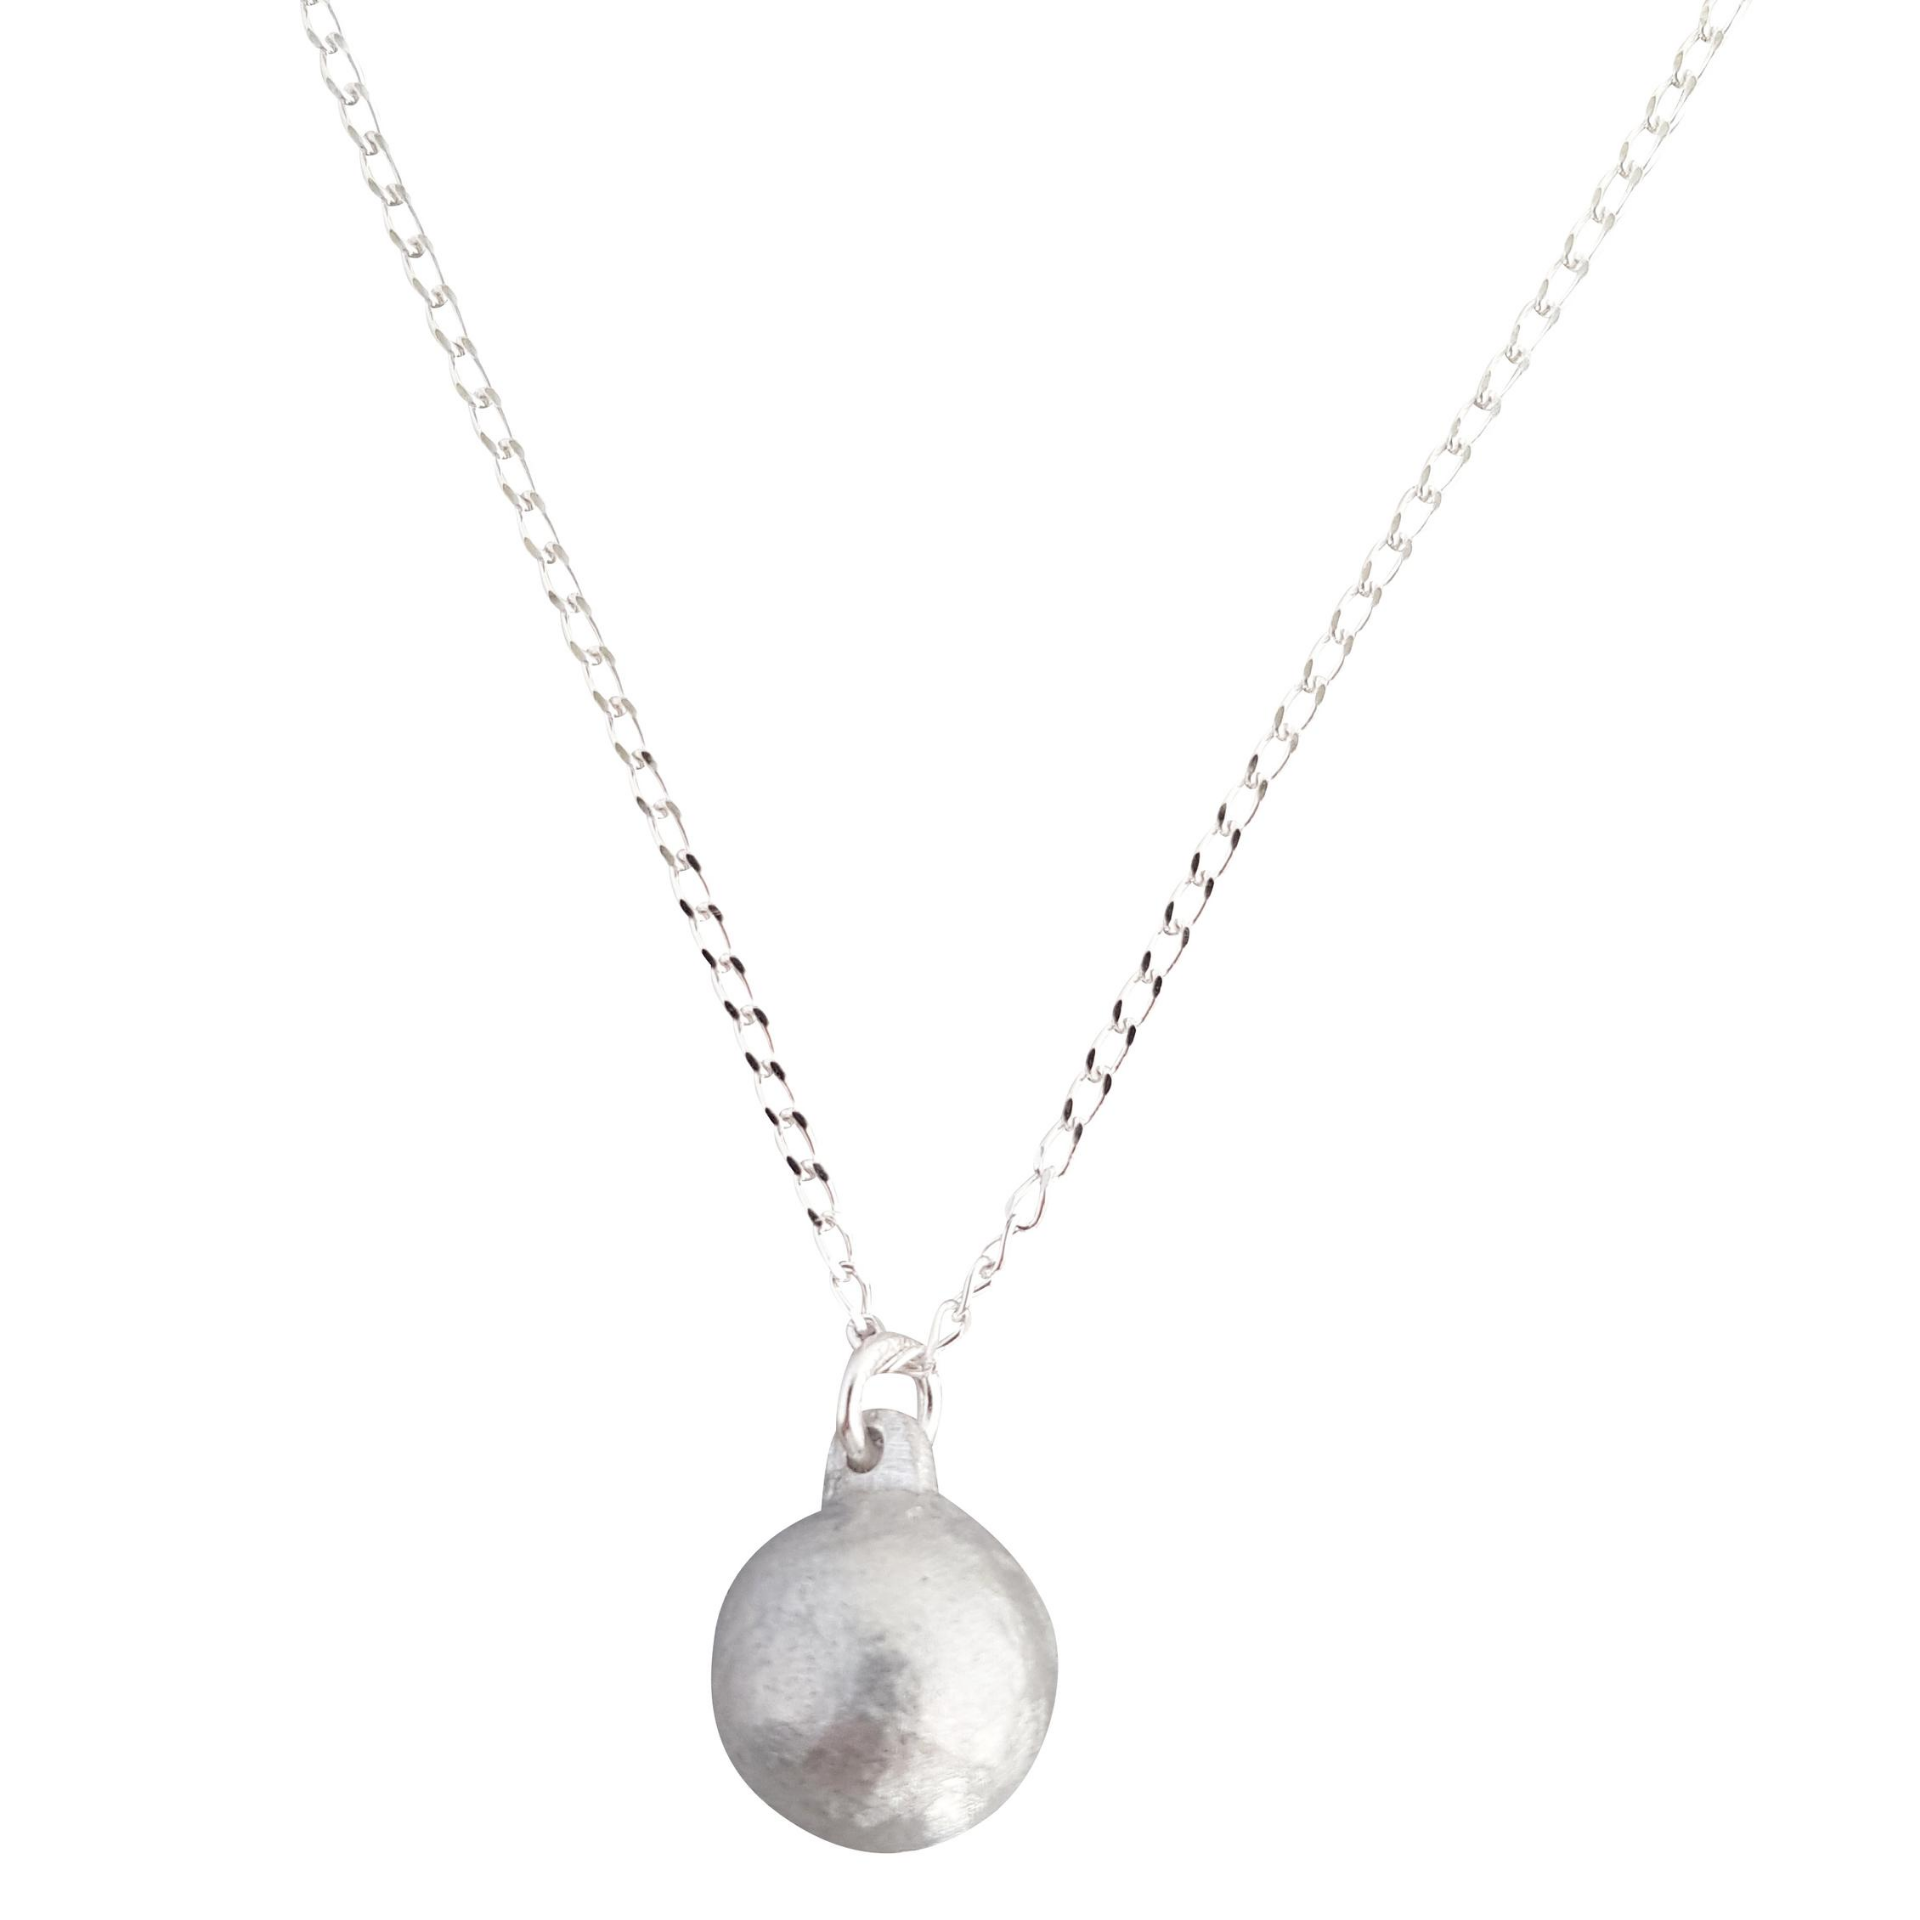 LOVEbomb Ball Shape Pendant on Sterling Silver Chain